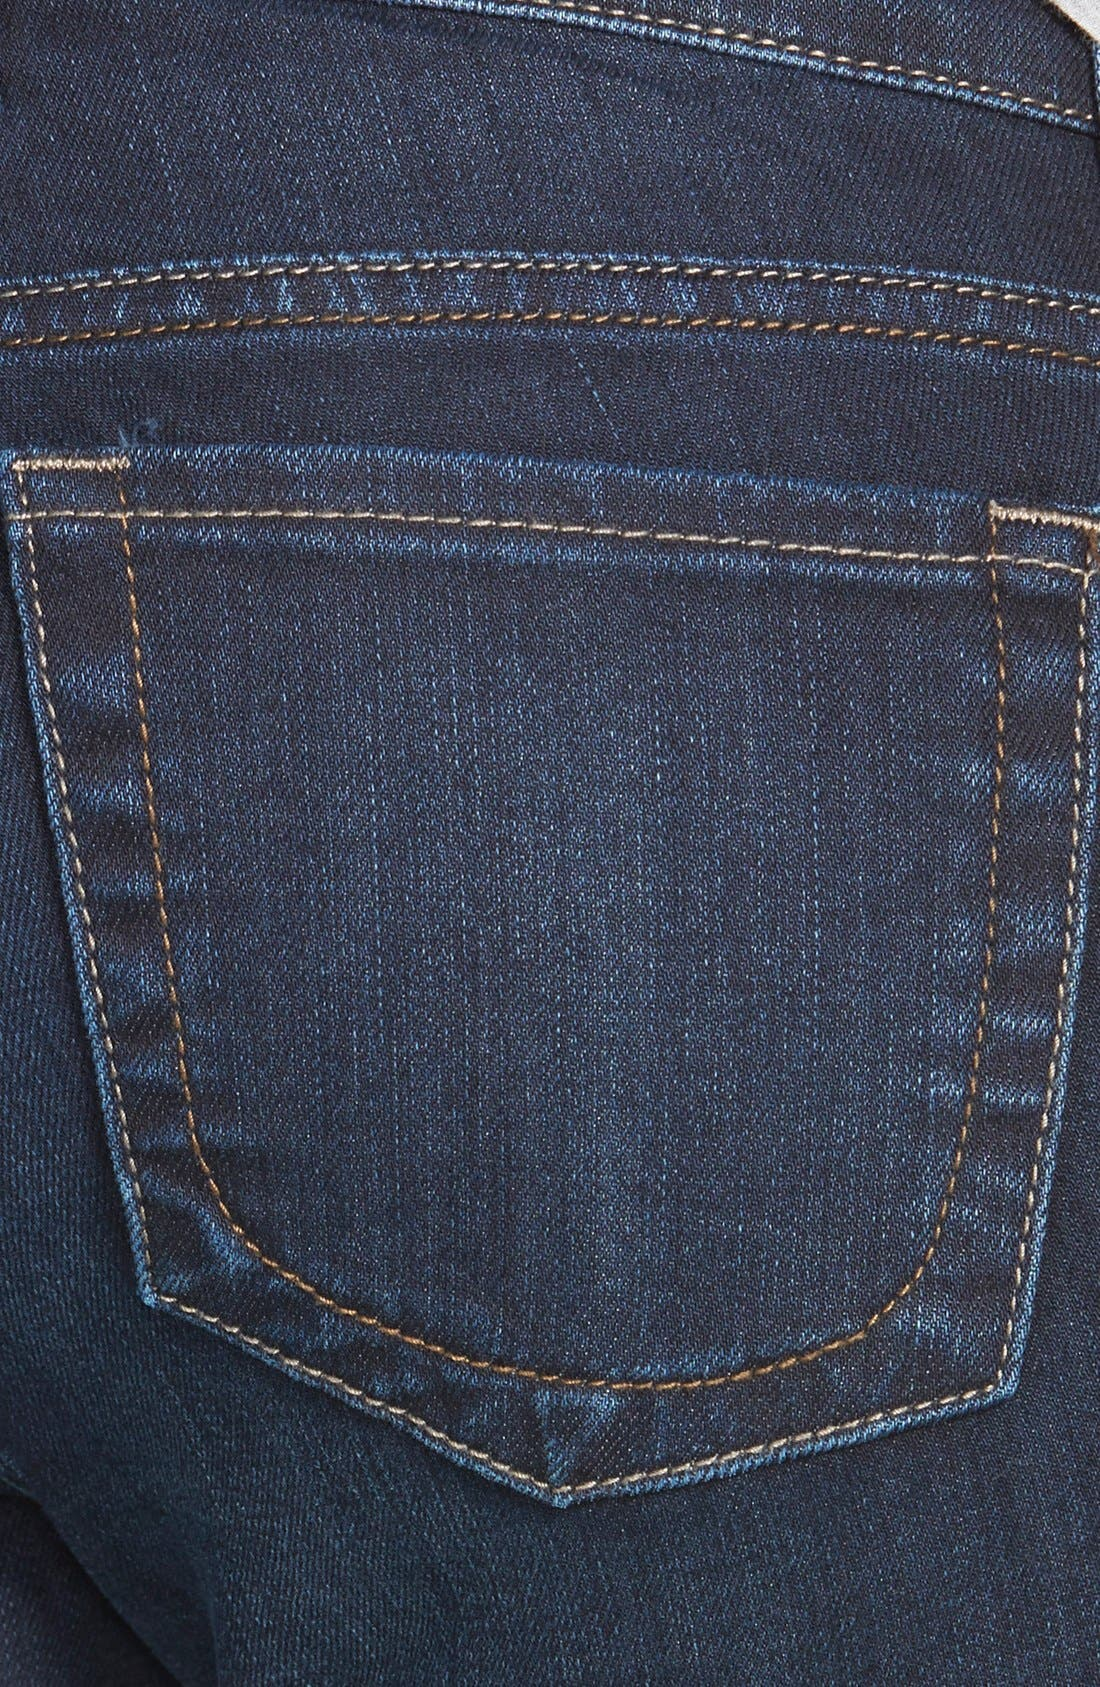 'Natalie' Stretch Bootcut Jeans,                             Alternate thumbnail 3, color,                             Beneficial